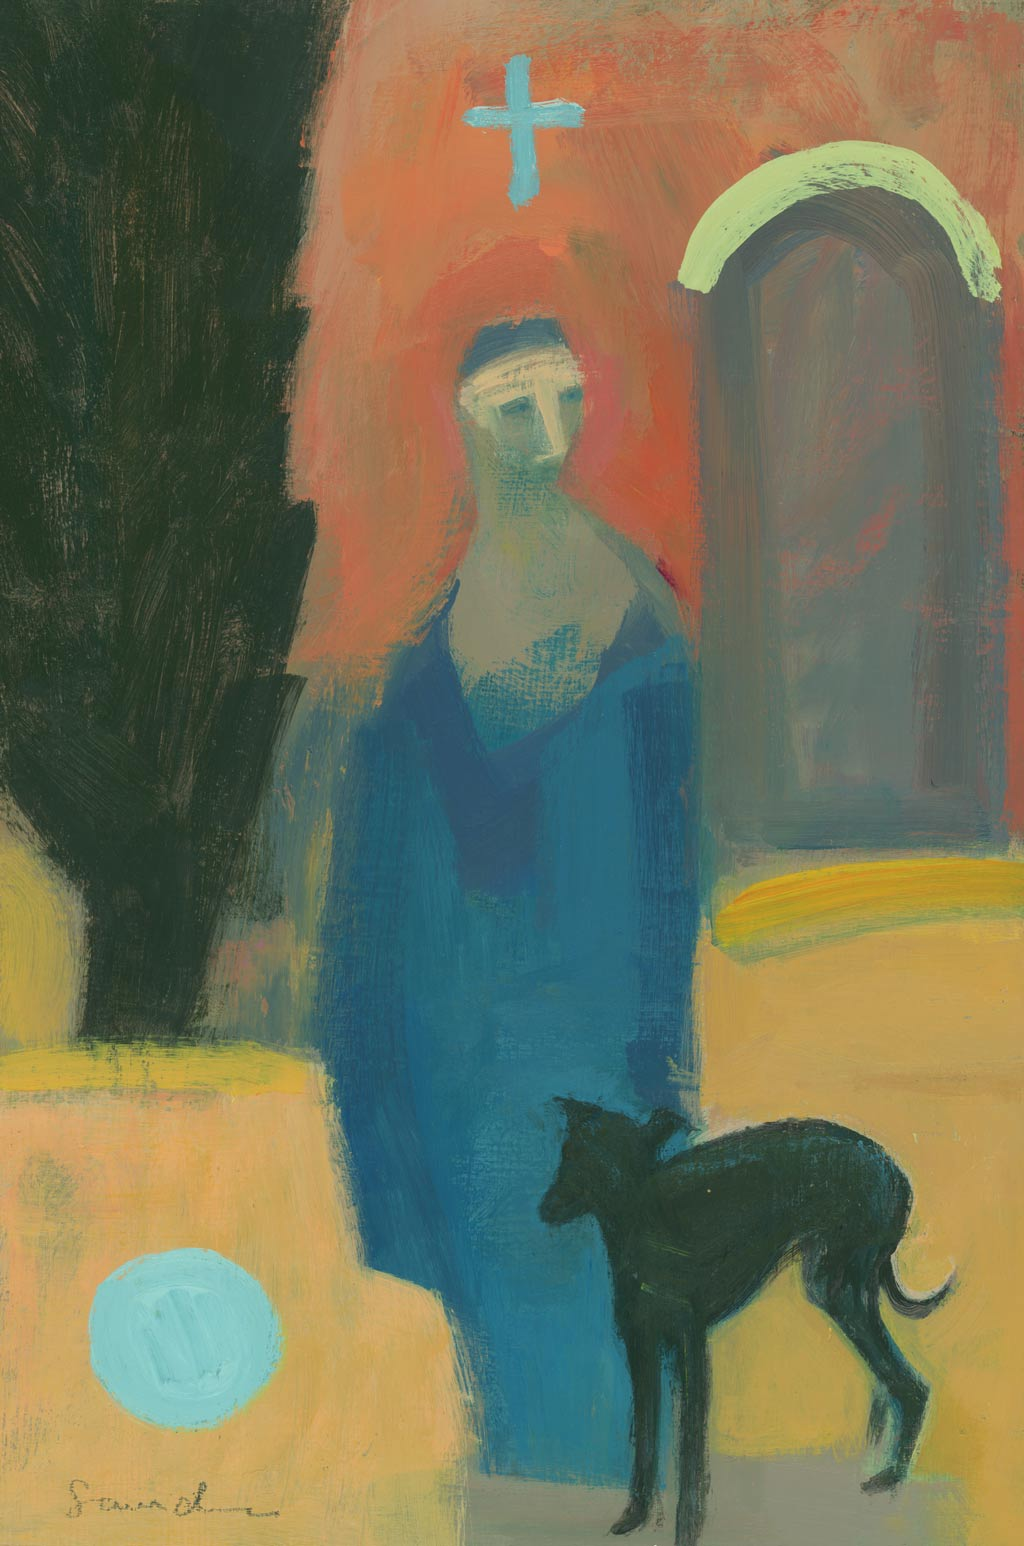 Buy 'Angel and Dog', original painting by Carol Saunderson at The Biscuit Factory